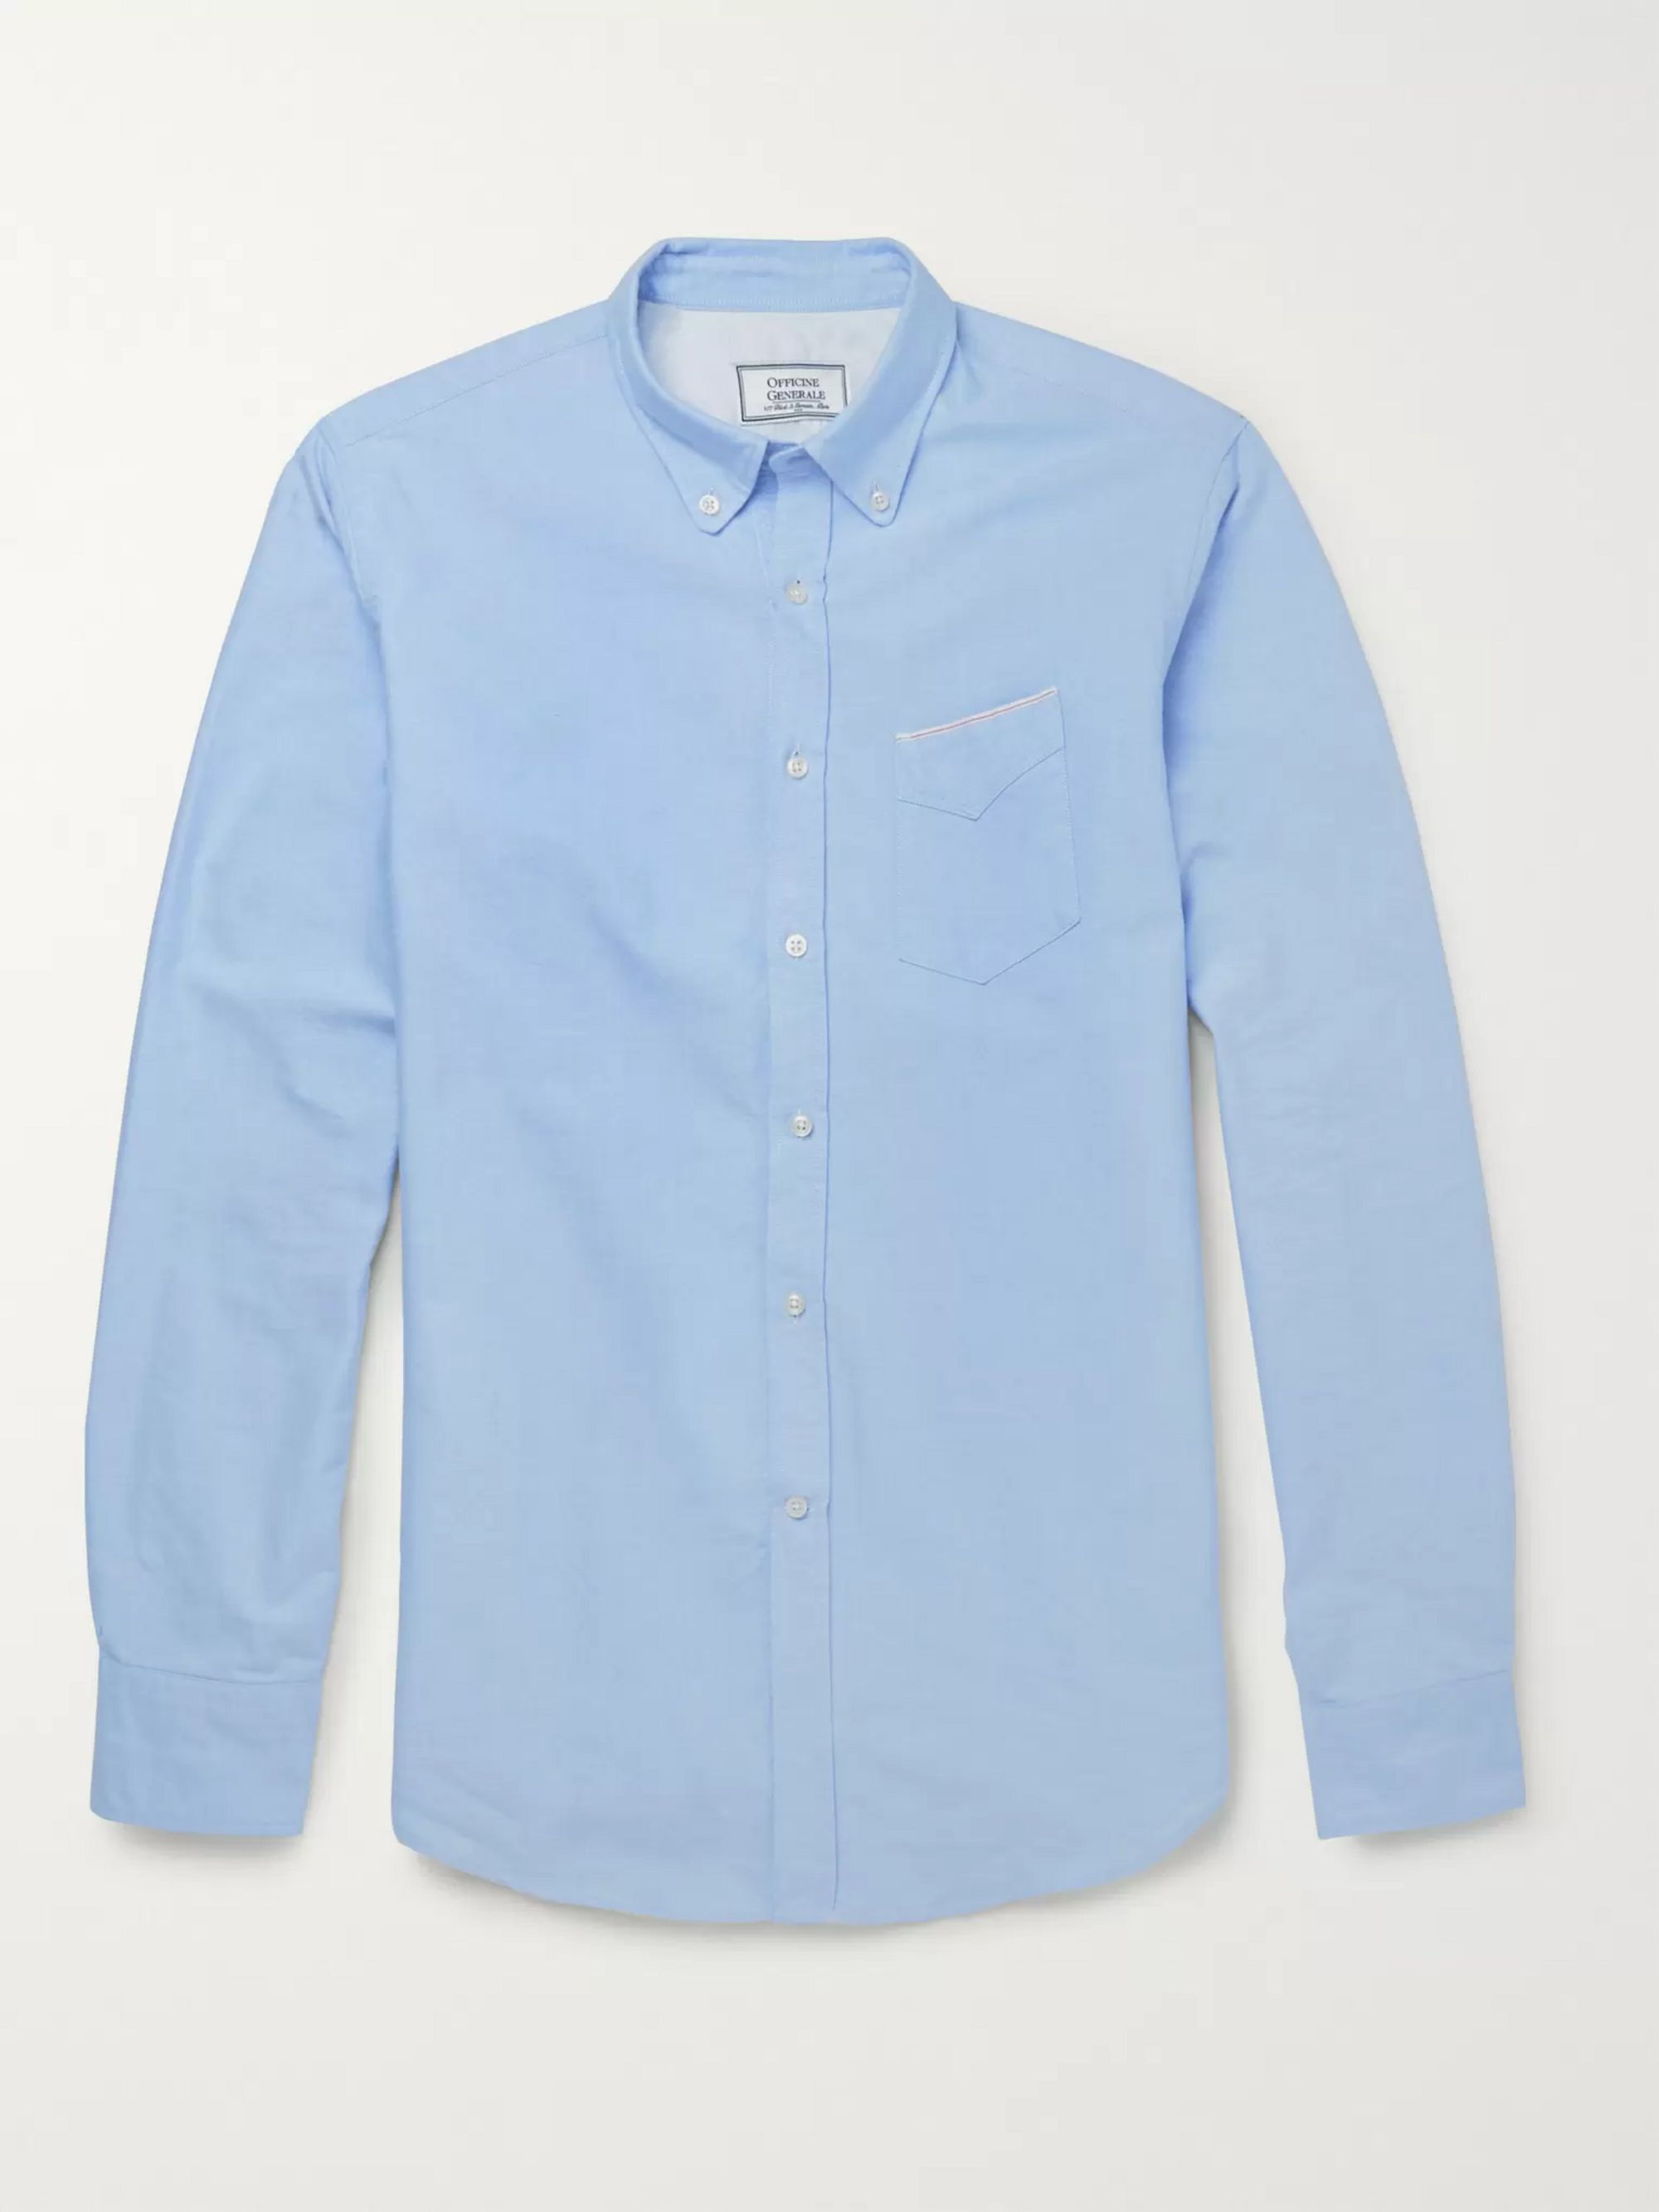 Officine Generale Slim-Fit Cotton Oxford Shirt